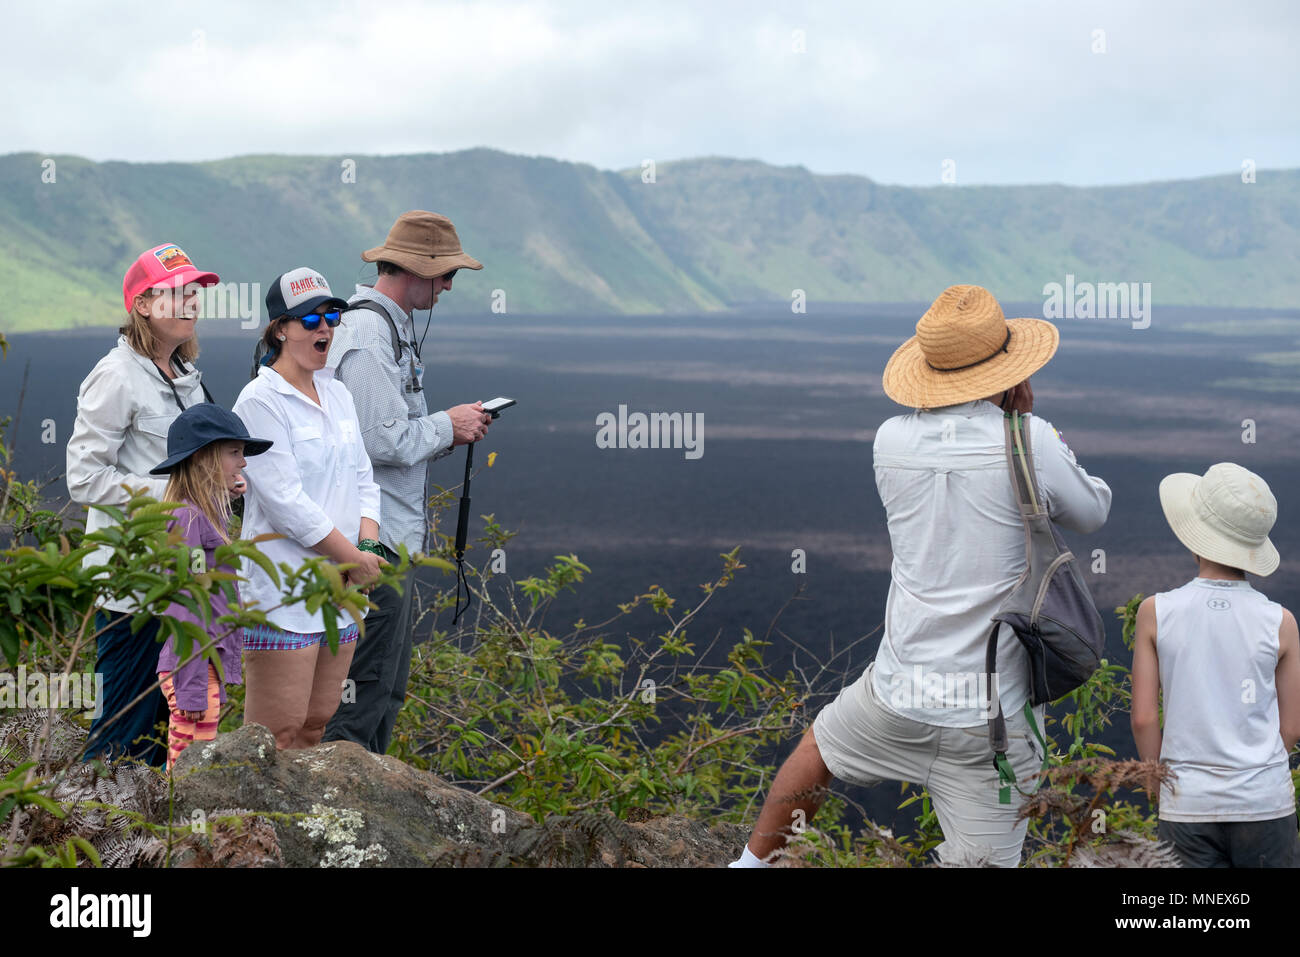 Guide yelling to create an echo on the rim of the Sierra Negra volcano on Isabela Island, Galapagos Islands, Ecuador. - Stock Image